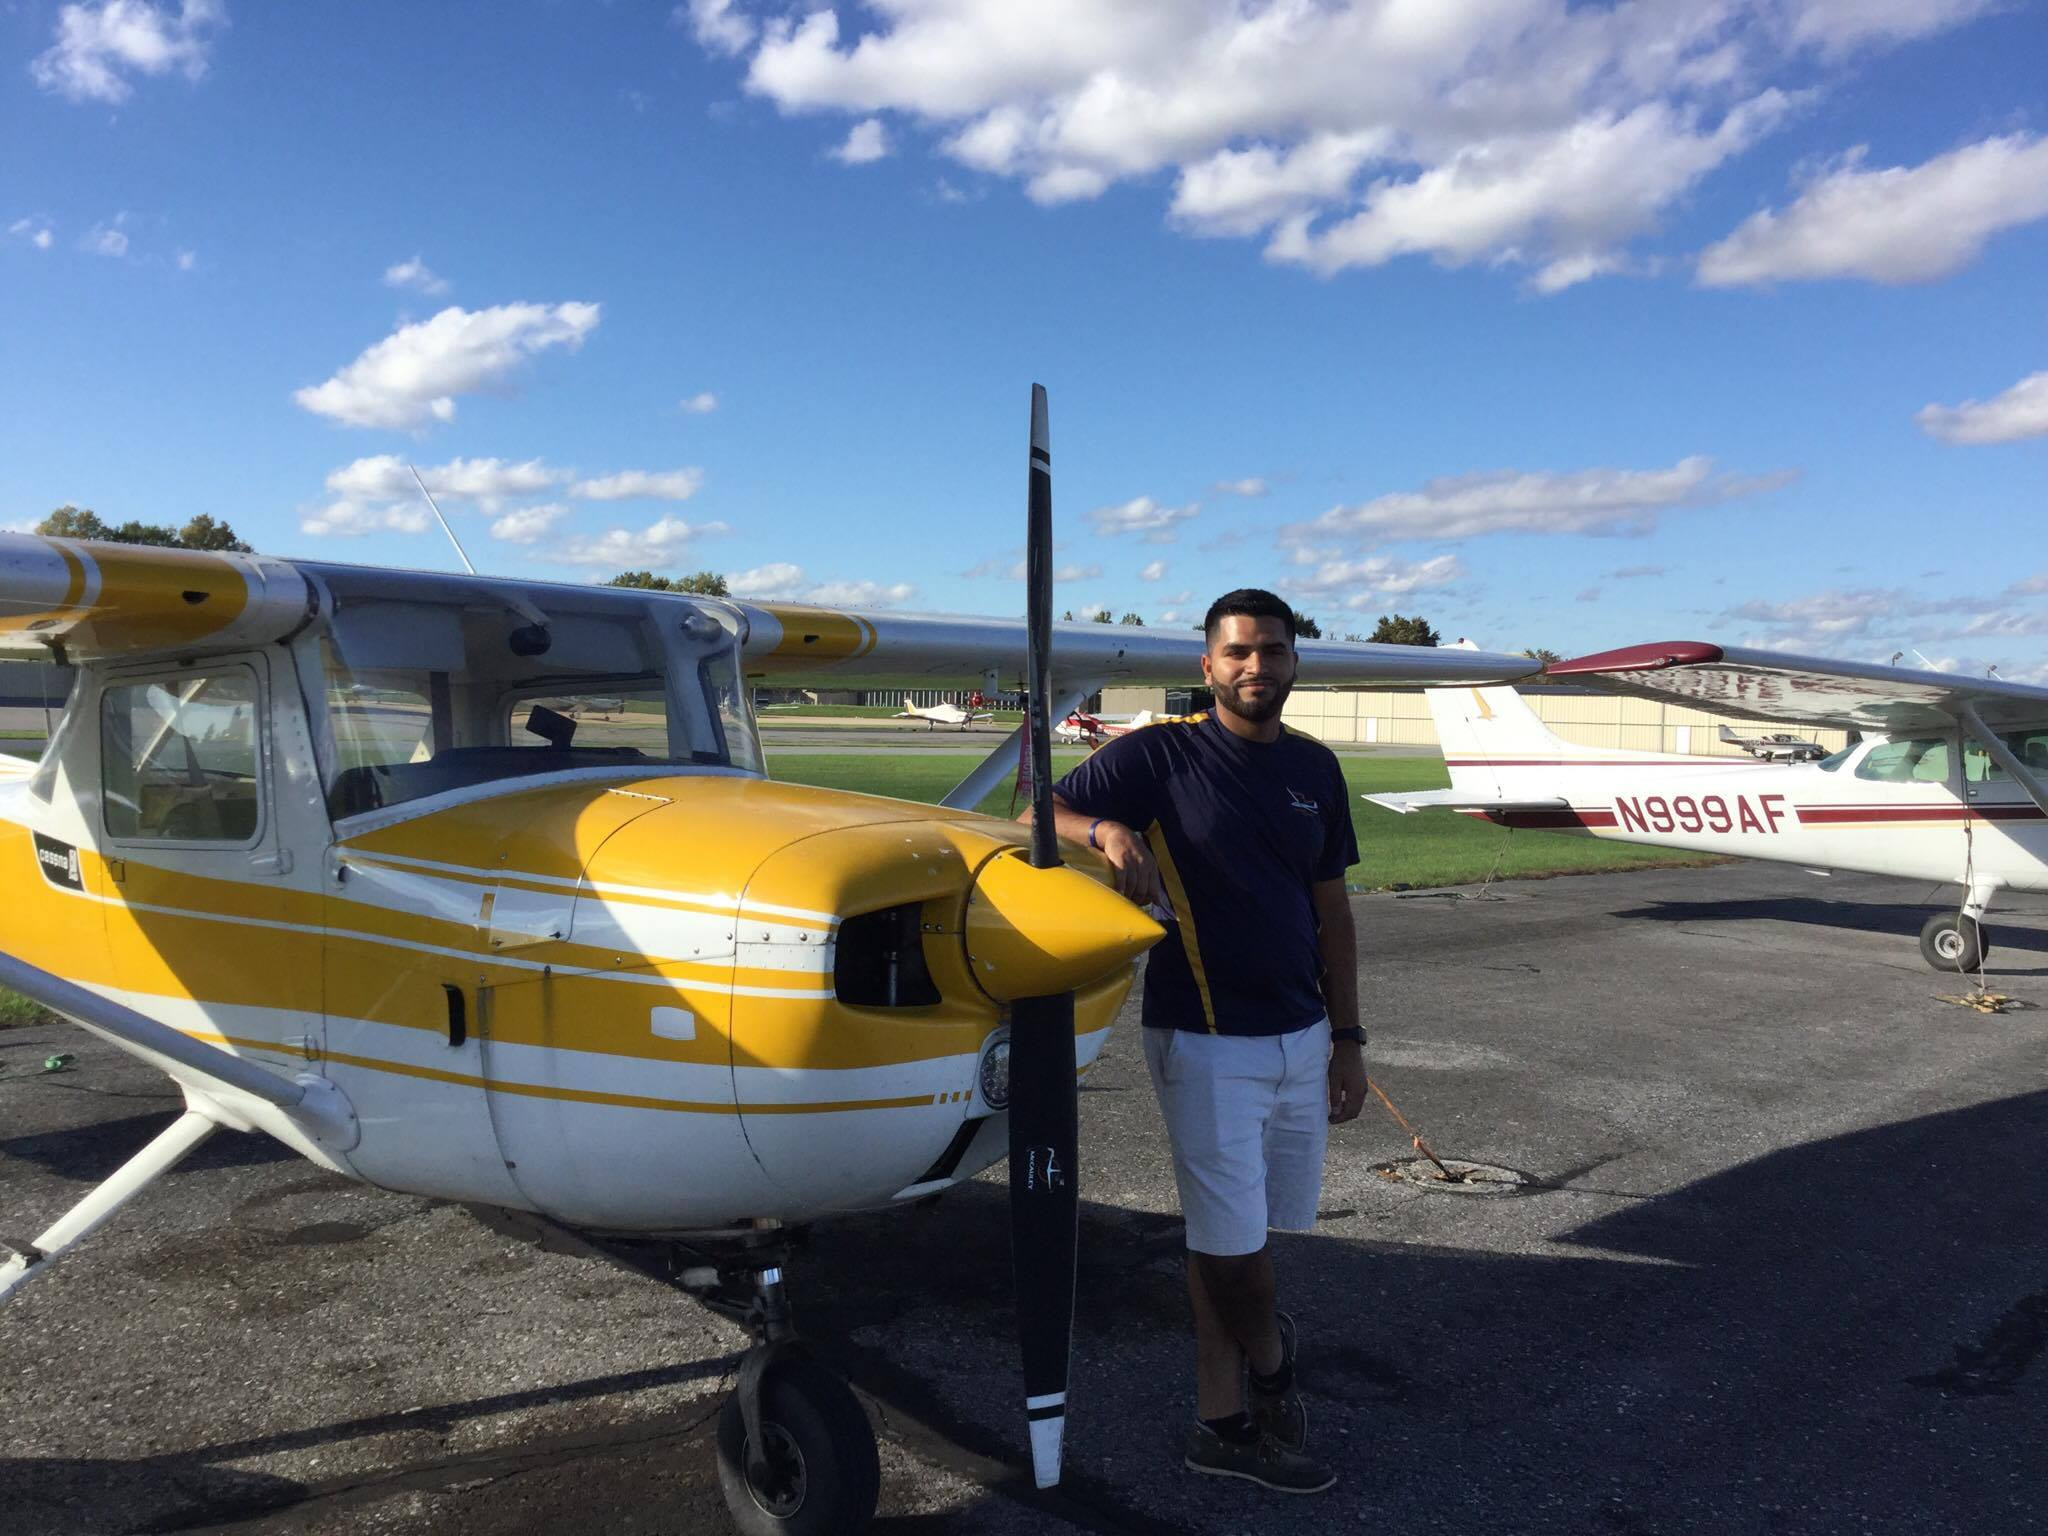 James Private Pilot Check Ride